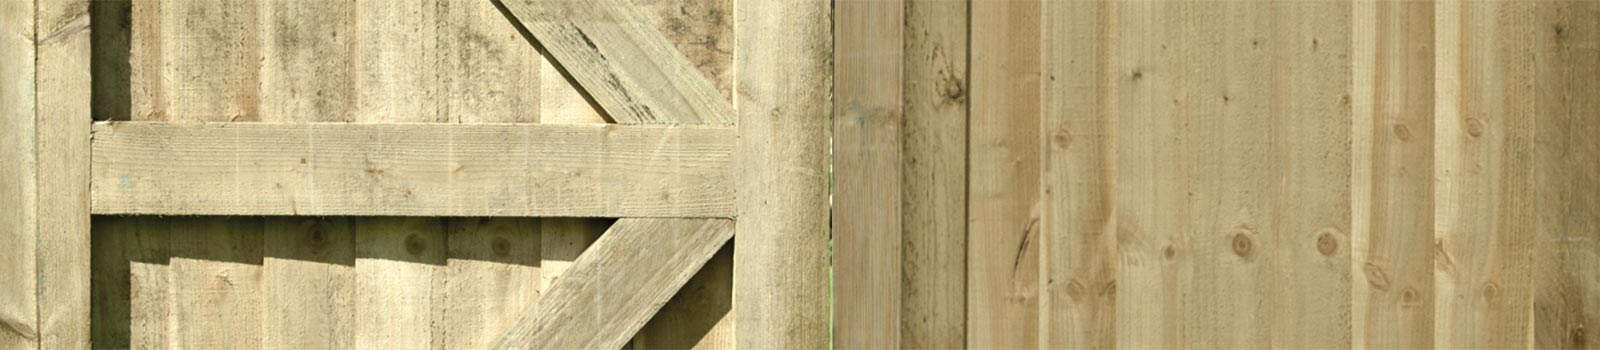 Fetheredge garden gate